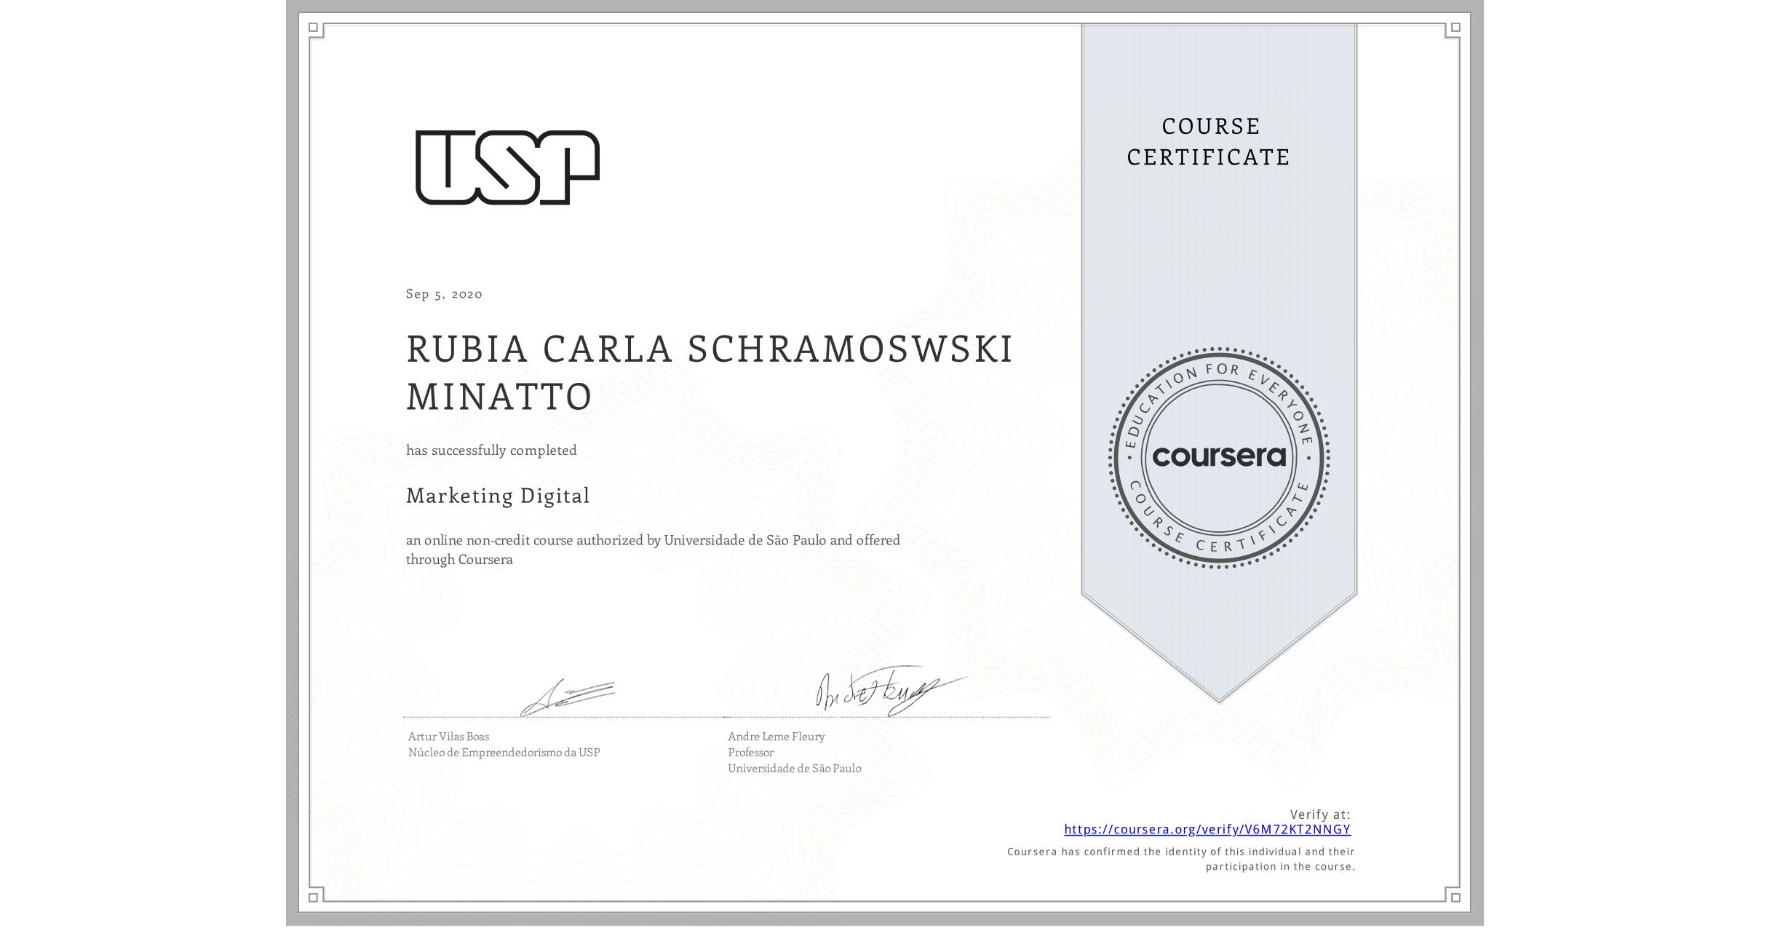 View certificate for  RUBIA CARLA SCHRAMOSWSKI MINATTO, Marketing Digital, an online non-credit course authorized by Universidade de São Paulo and offered through Coursera